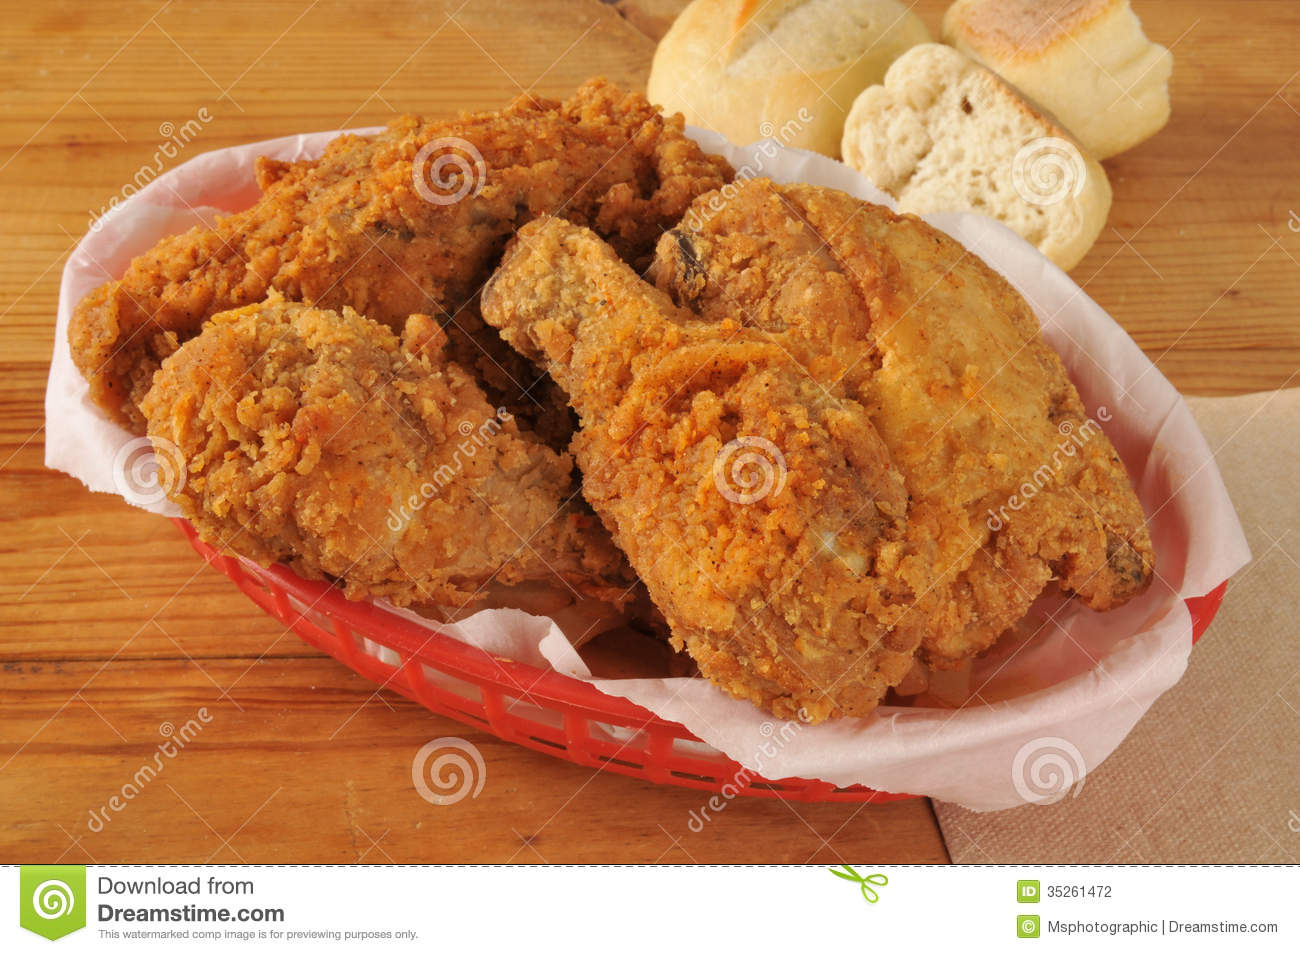 Fried Chicken In A Basket Stock Photography - Image: 35261472